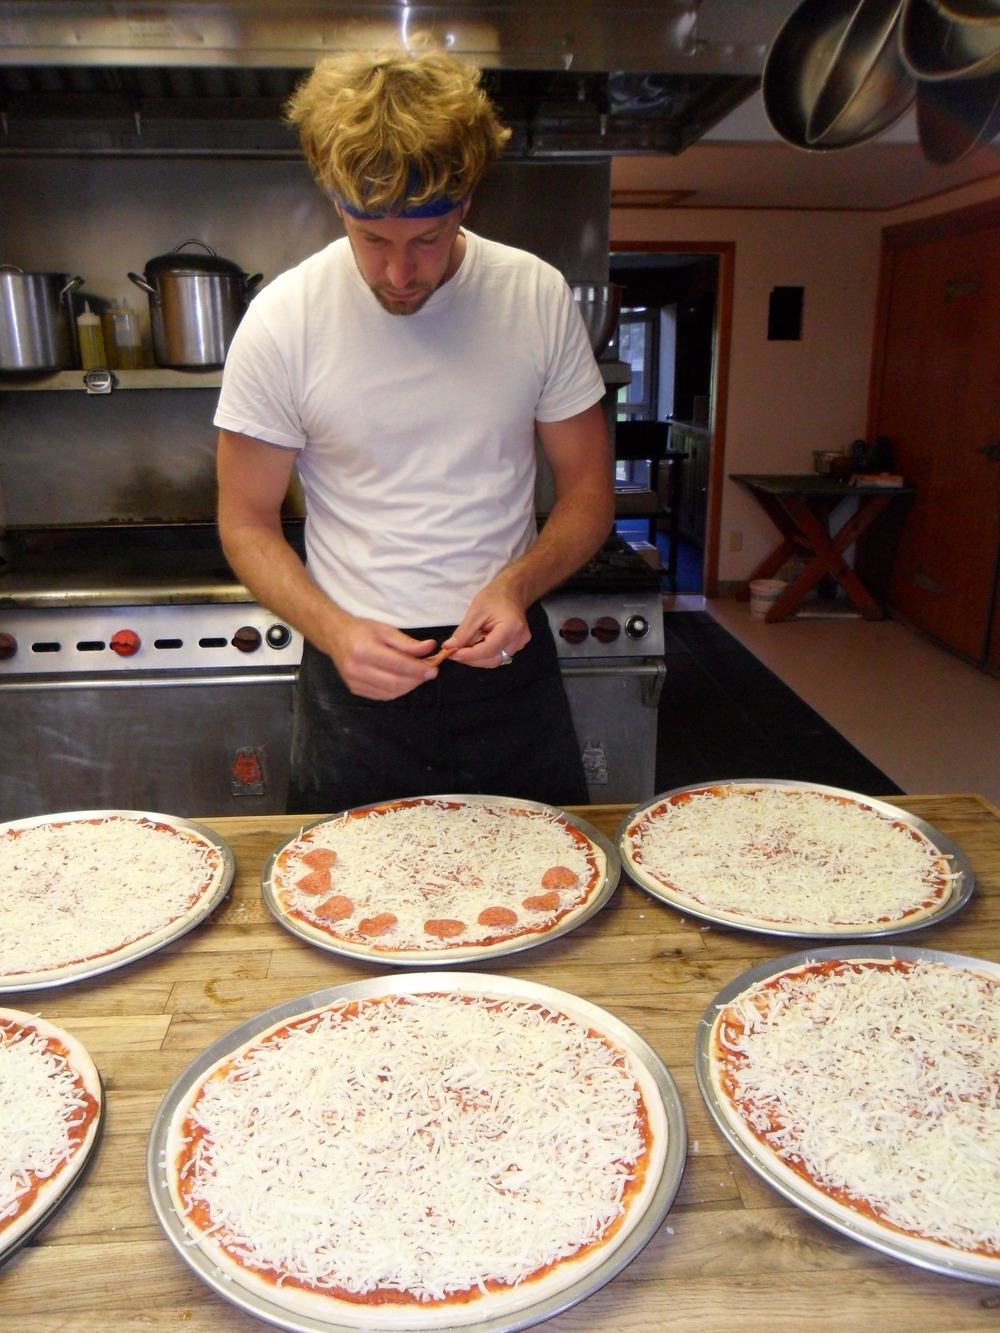 Making pizzas for The City Kids Wilderness Project in Wyoming withlocally made Bison pepperoni and Elk sausage.